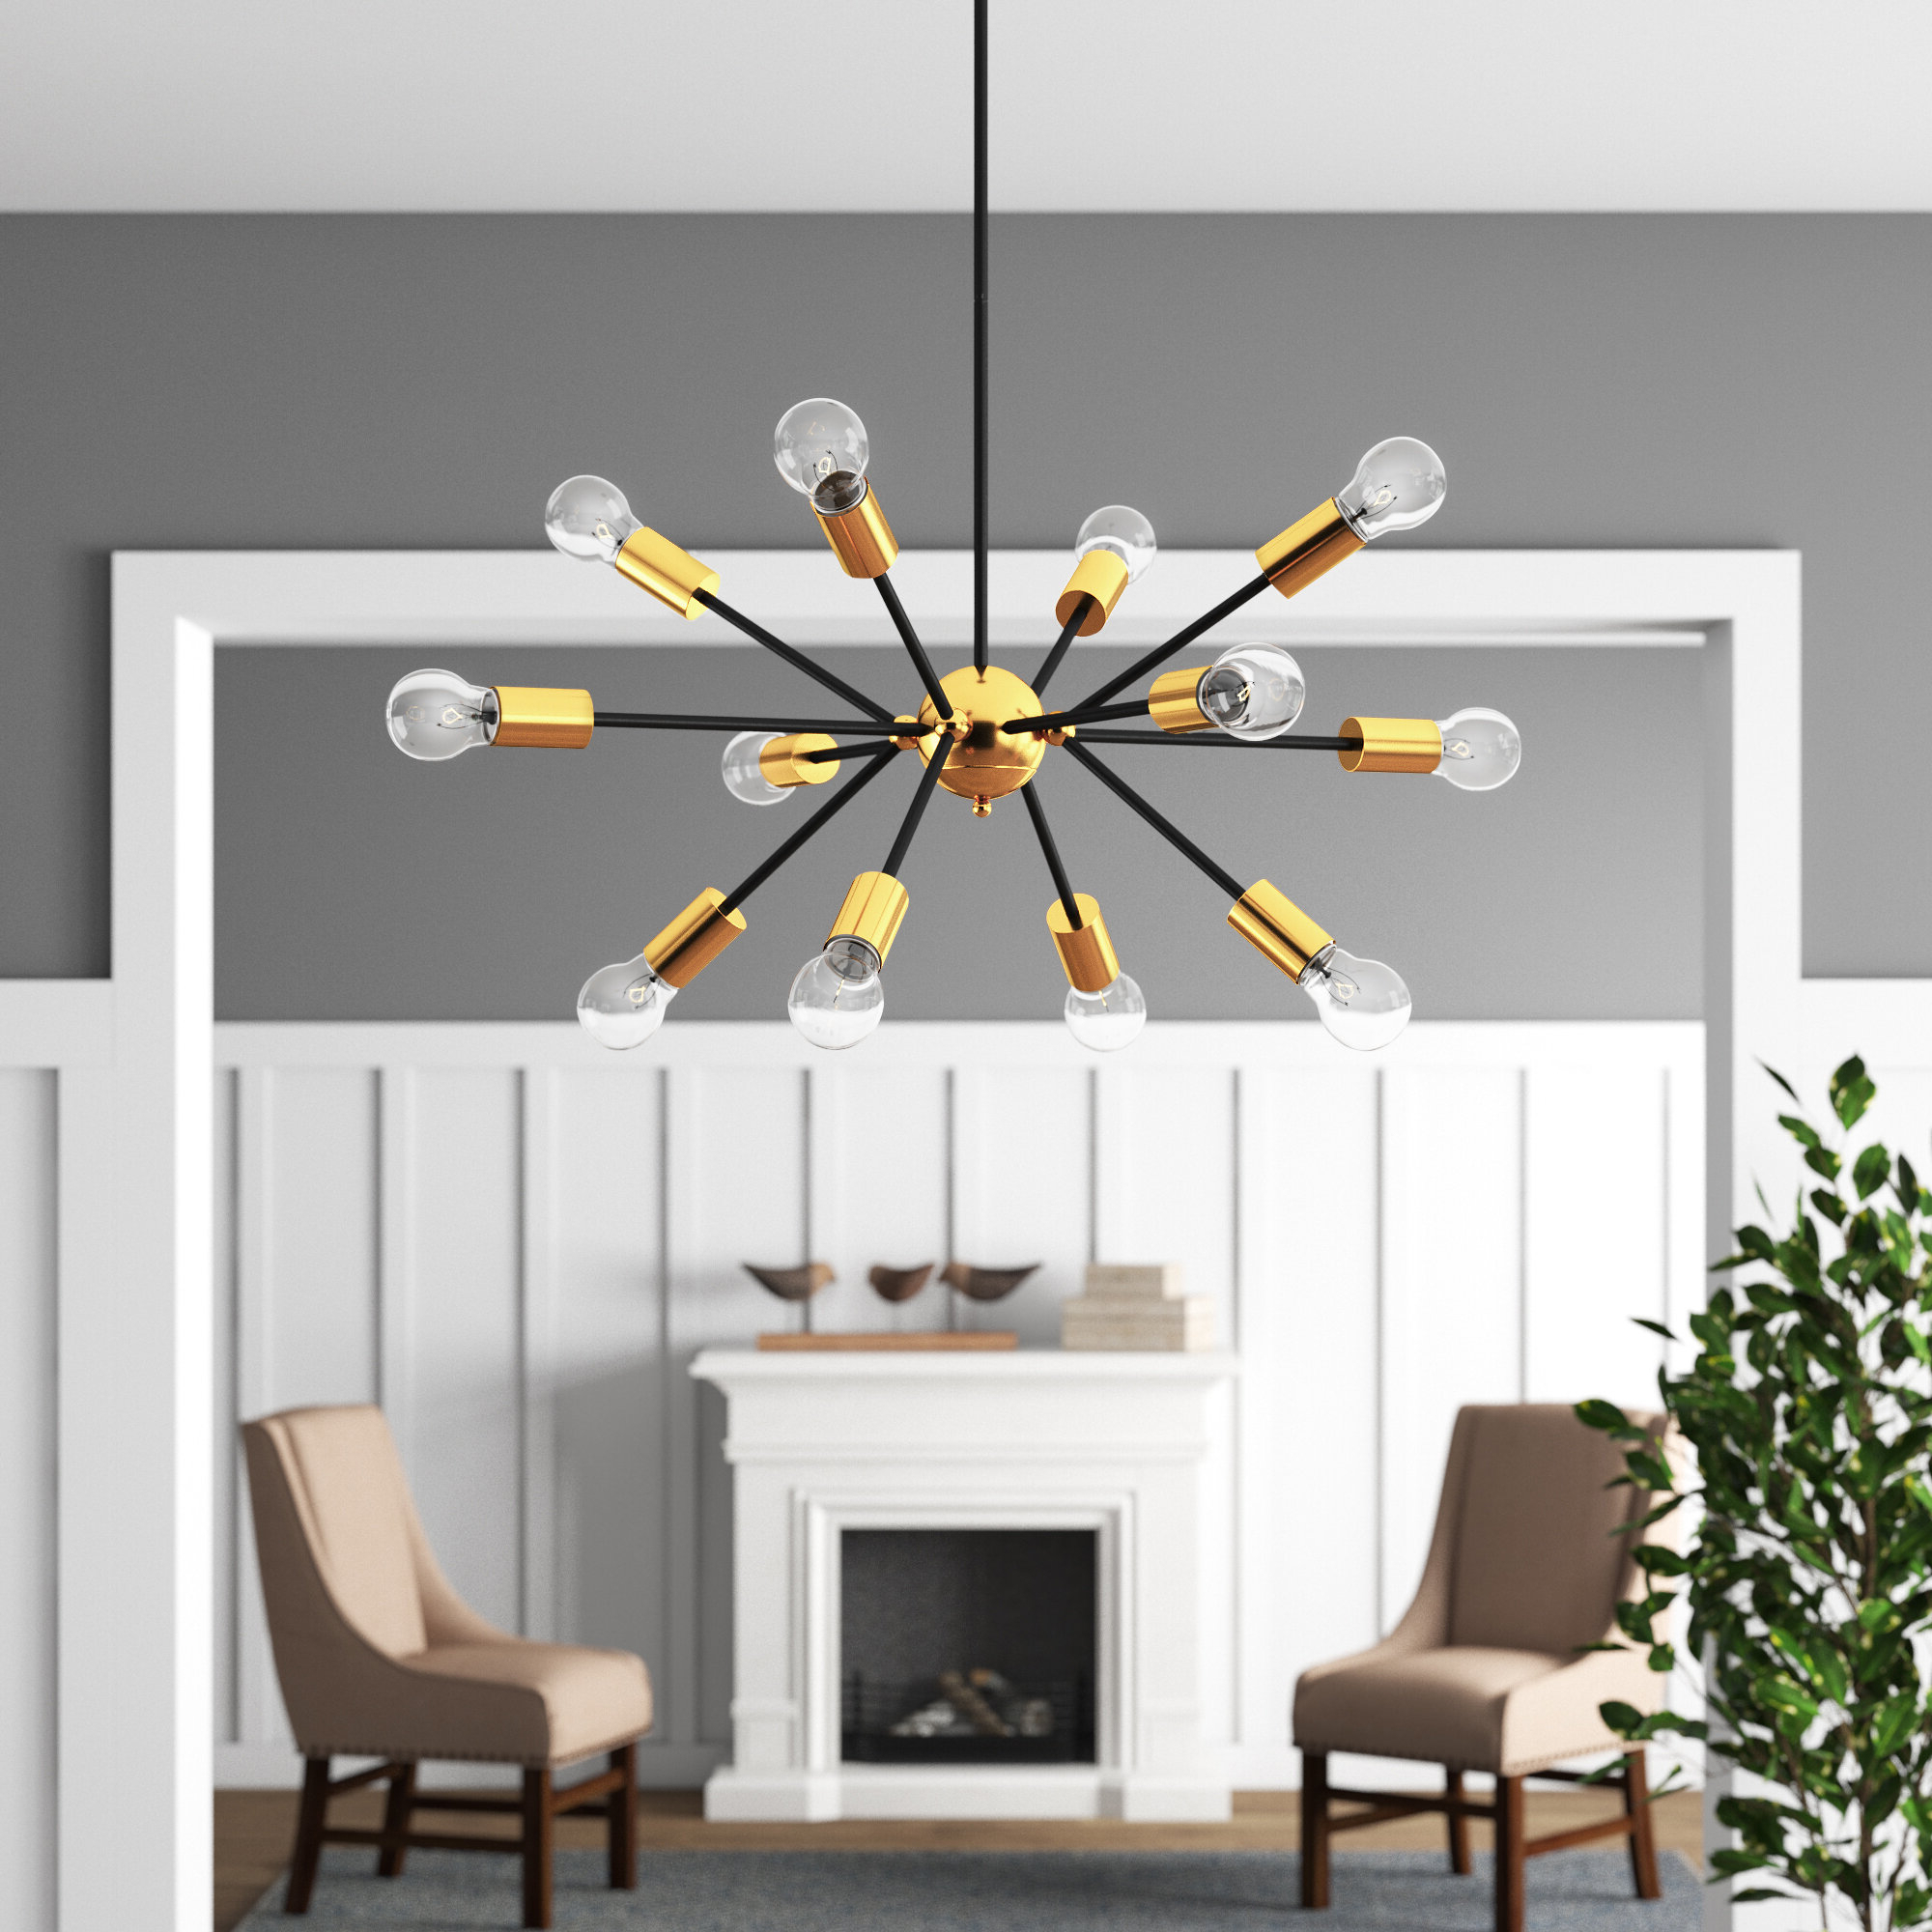 Widely Used Corona 12 Light Sputnik Chandeliers Throughout Dorcia 12 Light Sputnik Chandelier (View 10 of 25)